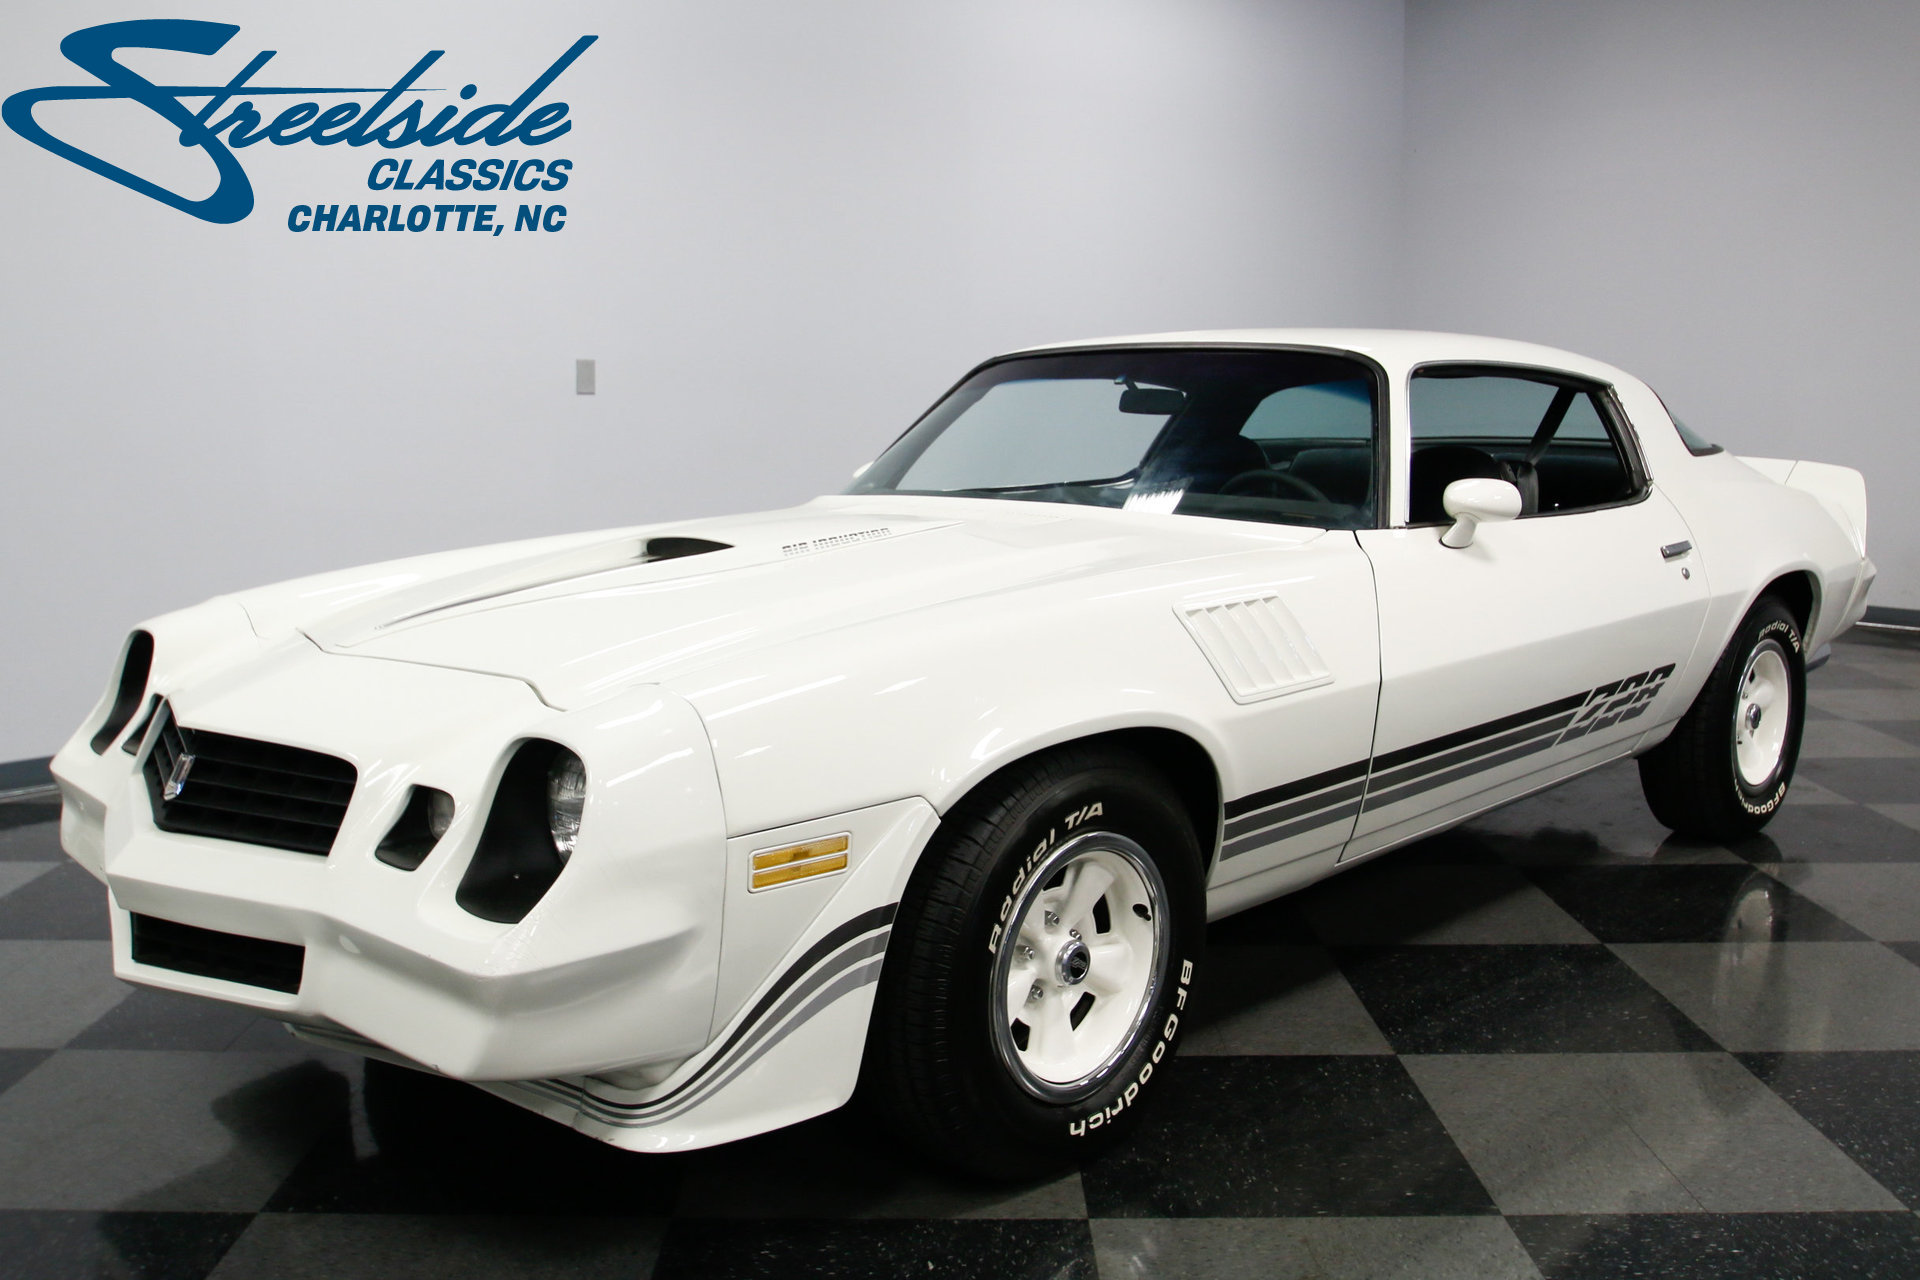 1978 Chevrolet Camaro Streetside Classics The Nation S Trusted Classic Car Consignment Dealer